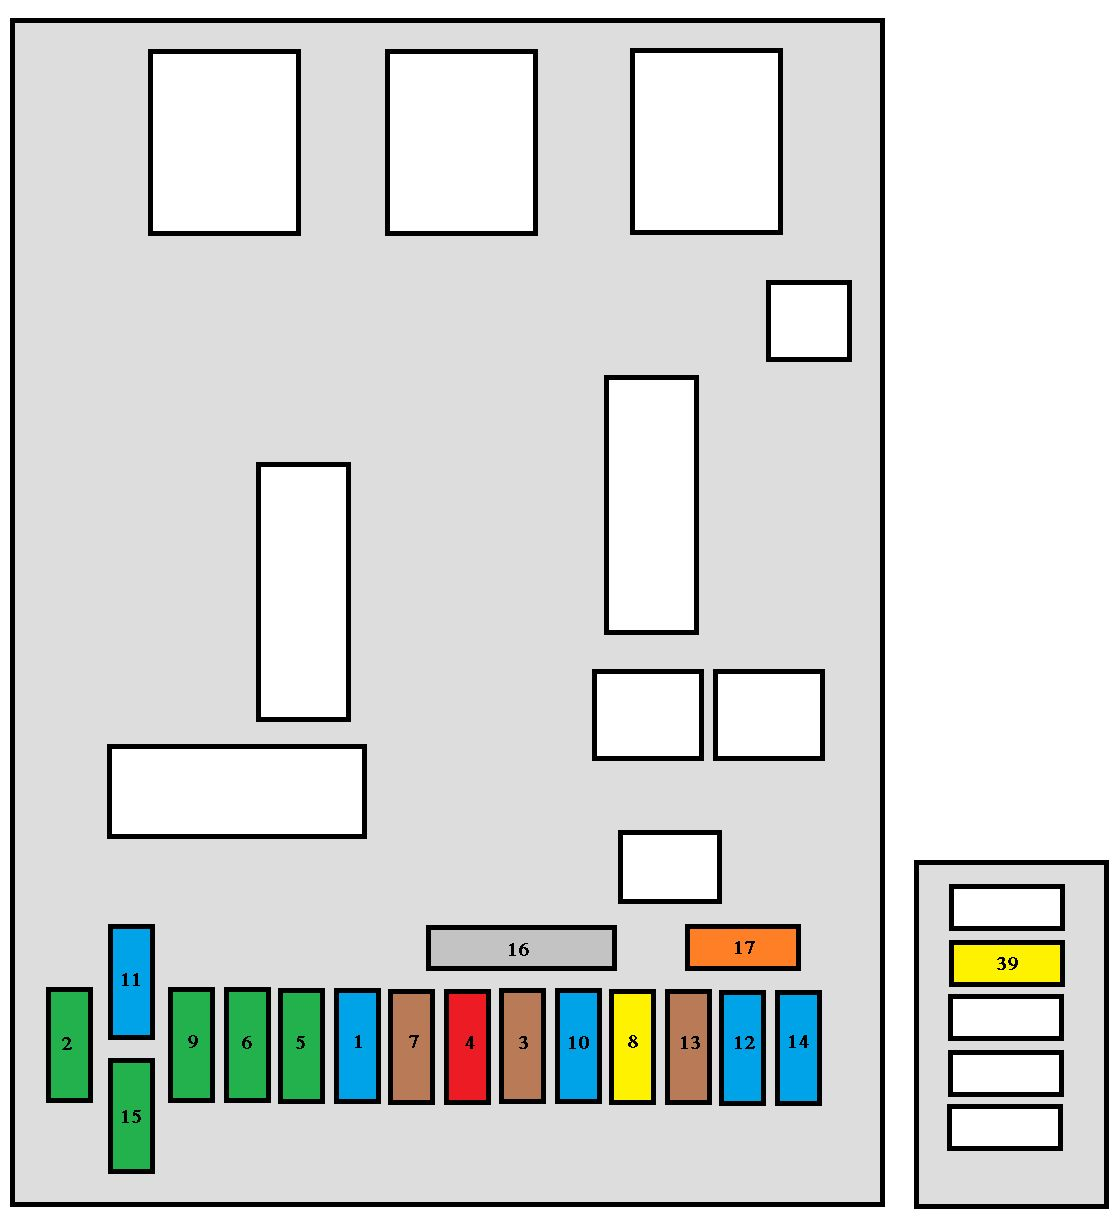 Peugeot 307 2005 2008 fuse box diagram auto genius peugeot 307 2005 2008 fuse box diagram swarovskicordoba Choice Image